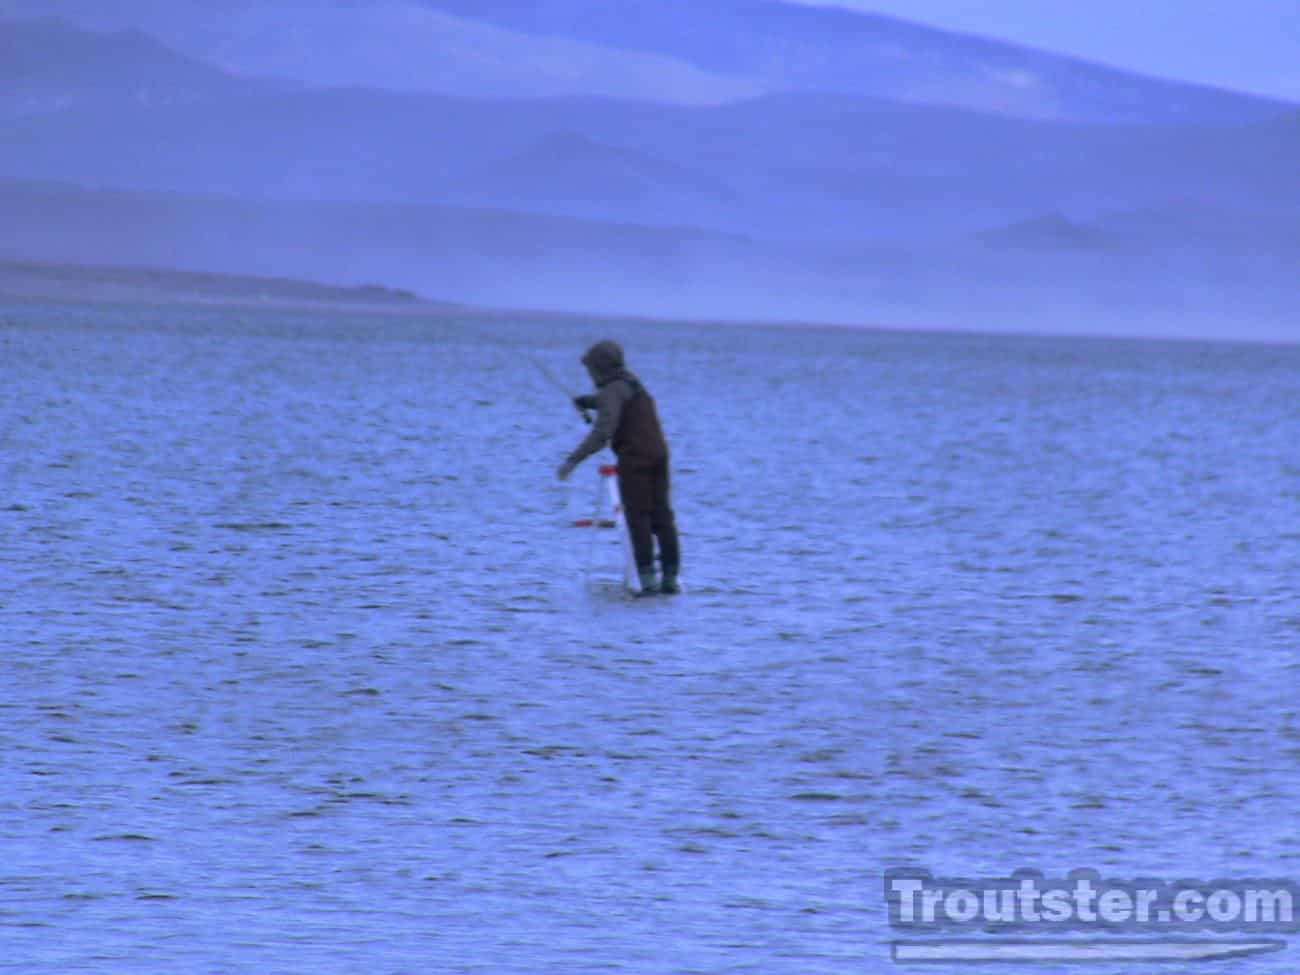 A fly fisherman casting on pyramid lake in Nevada